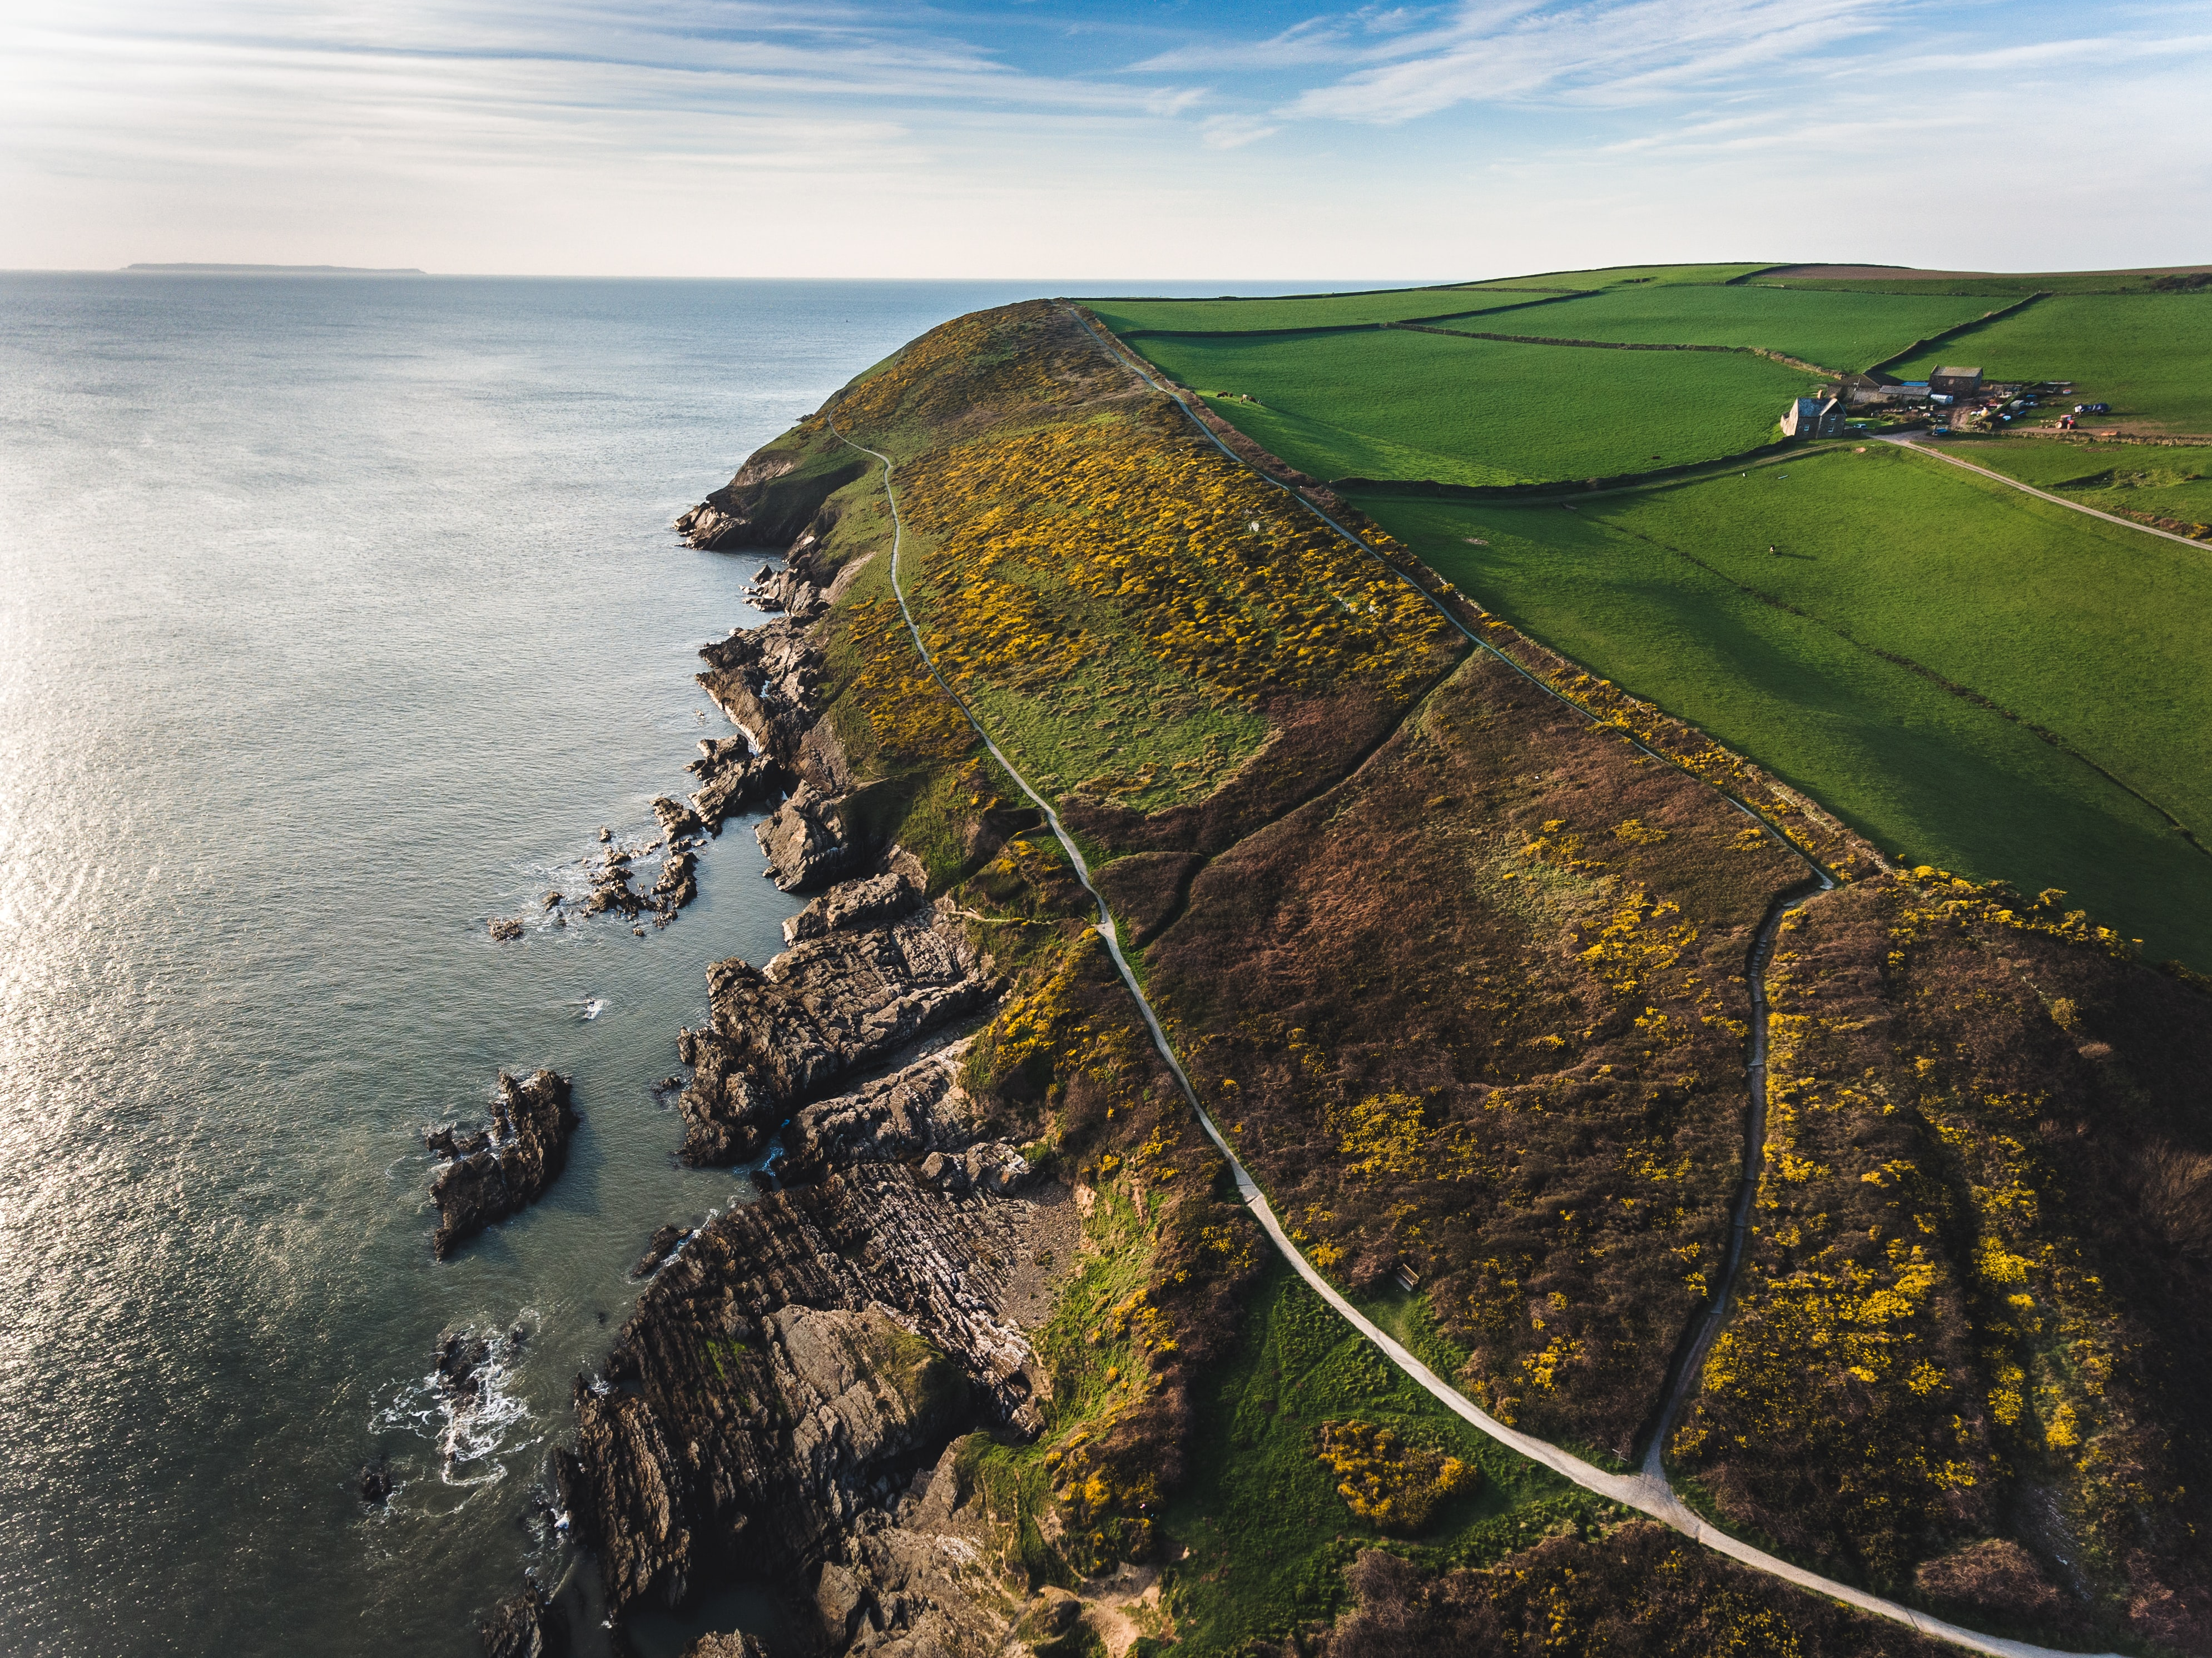 aerial view photography of cliff near body of water